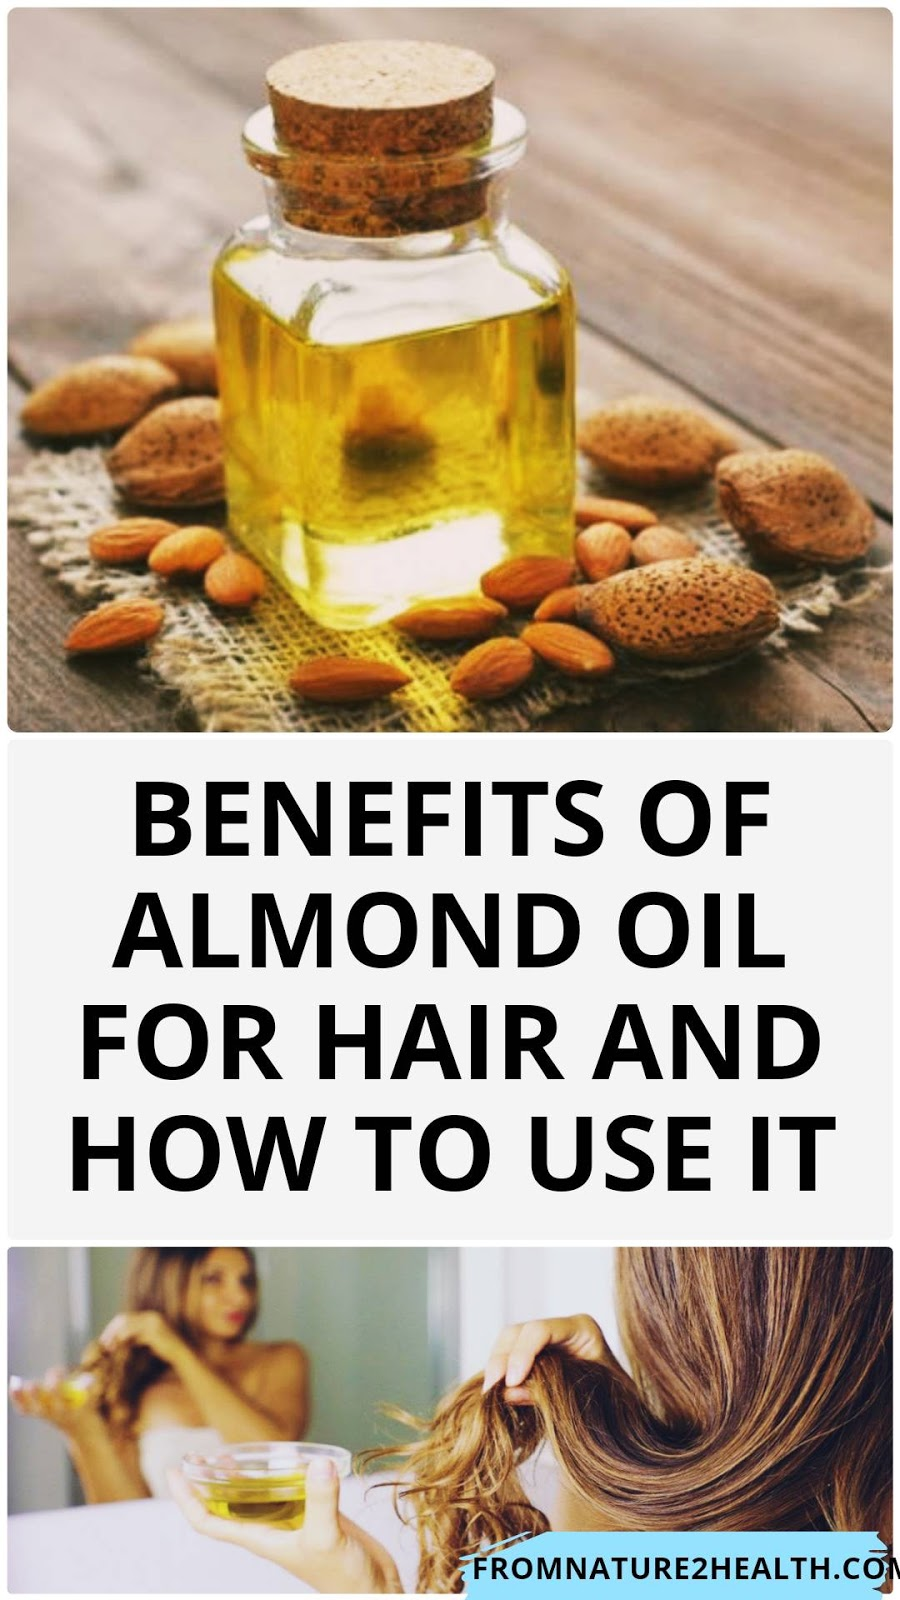 Benefits of Almond Oil for Hair and How to Use it